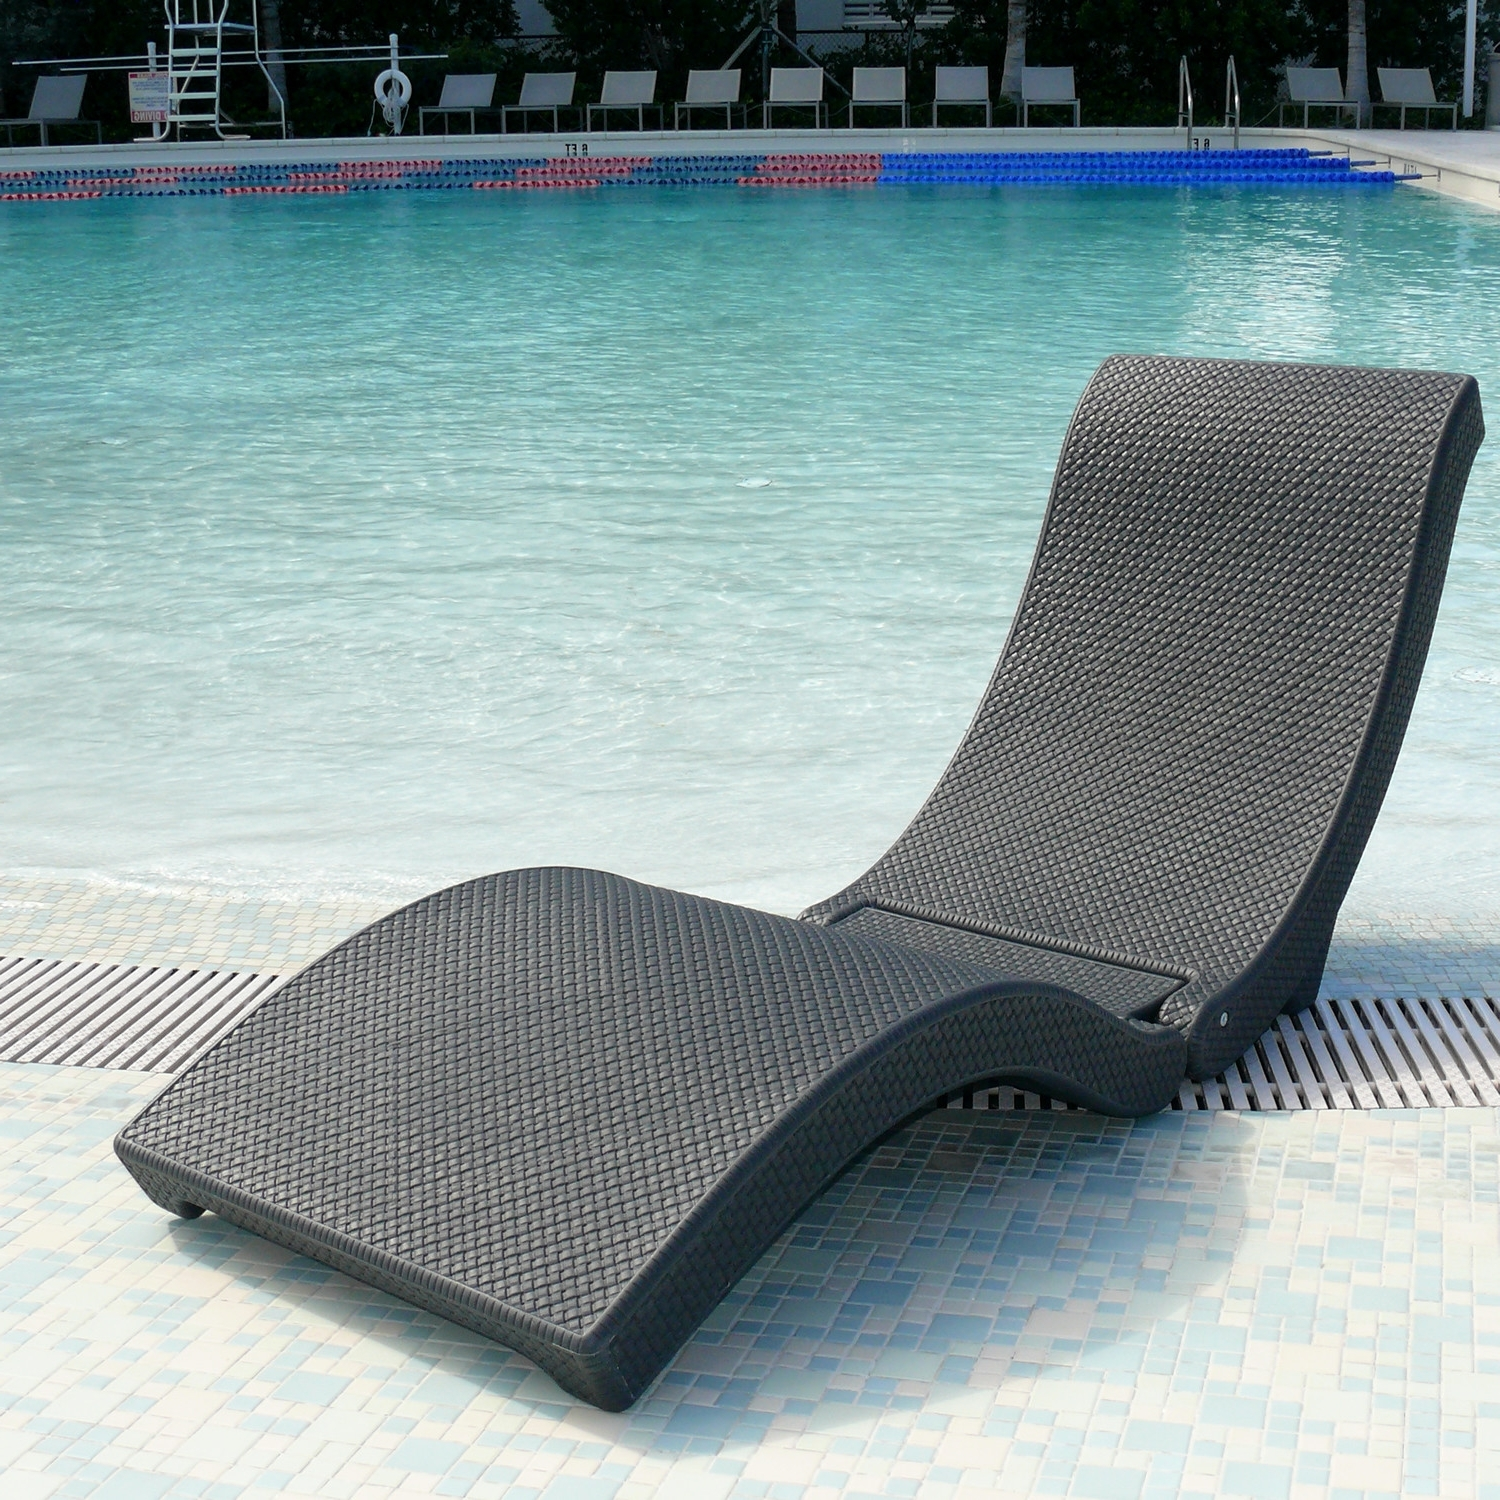 Famous Lounge Chair : Pvc Pool Lounge Chairs Garden Furniture Chaise Inside Pvc Chaise Lounges (View 15 of 15)